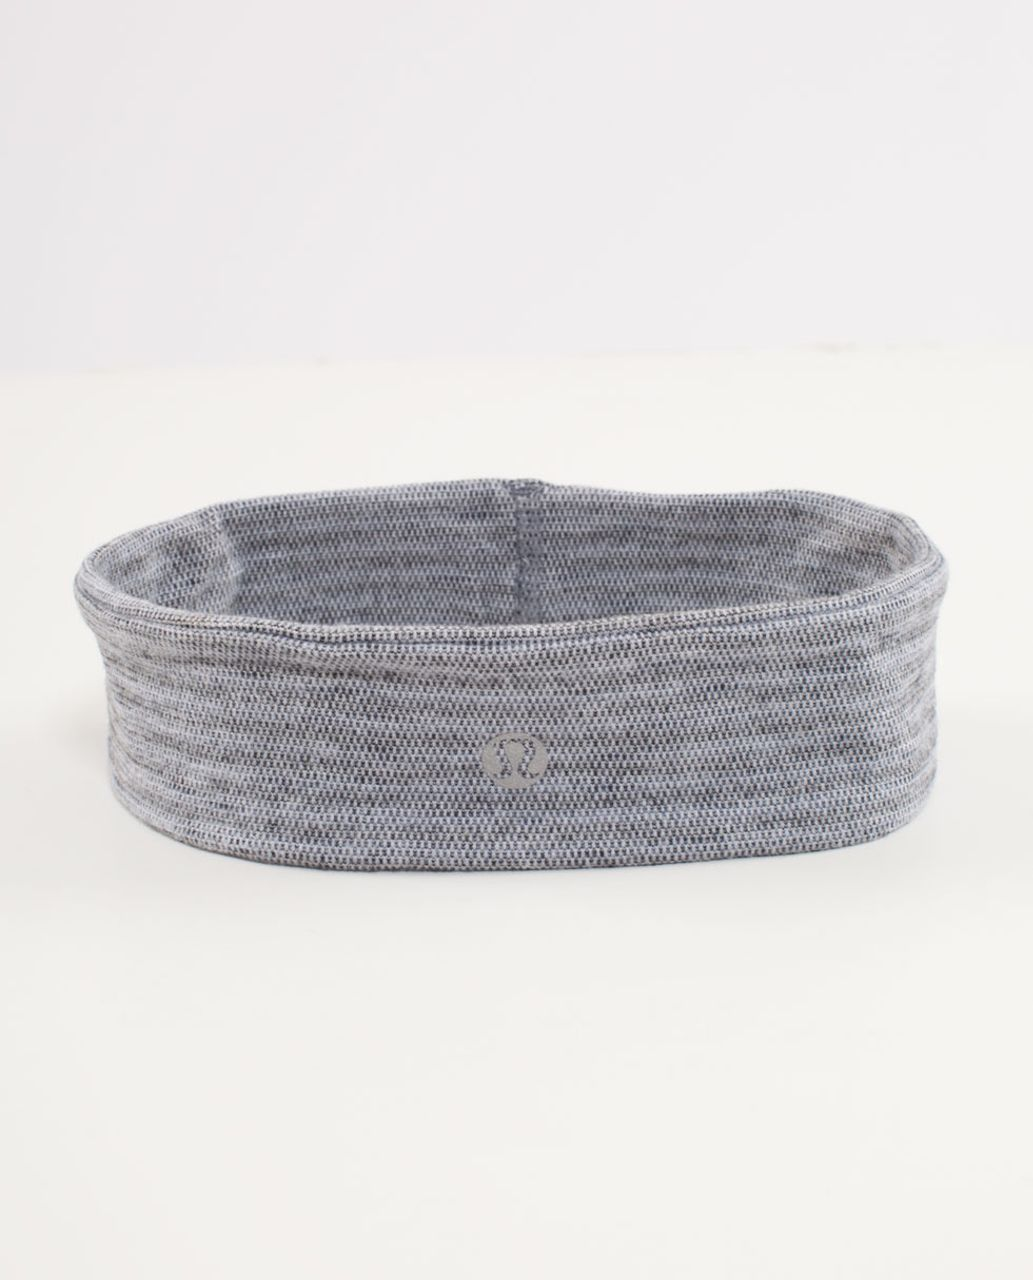 Lululemon Lucky Luon Headband - Deep Coal Silver Spoon Pique